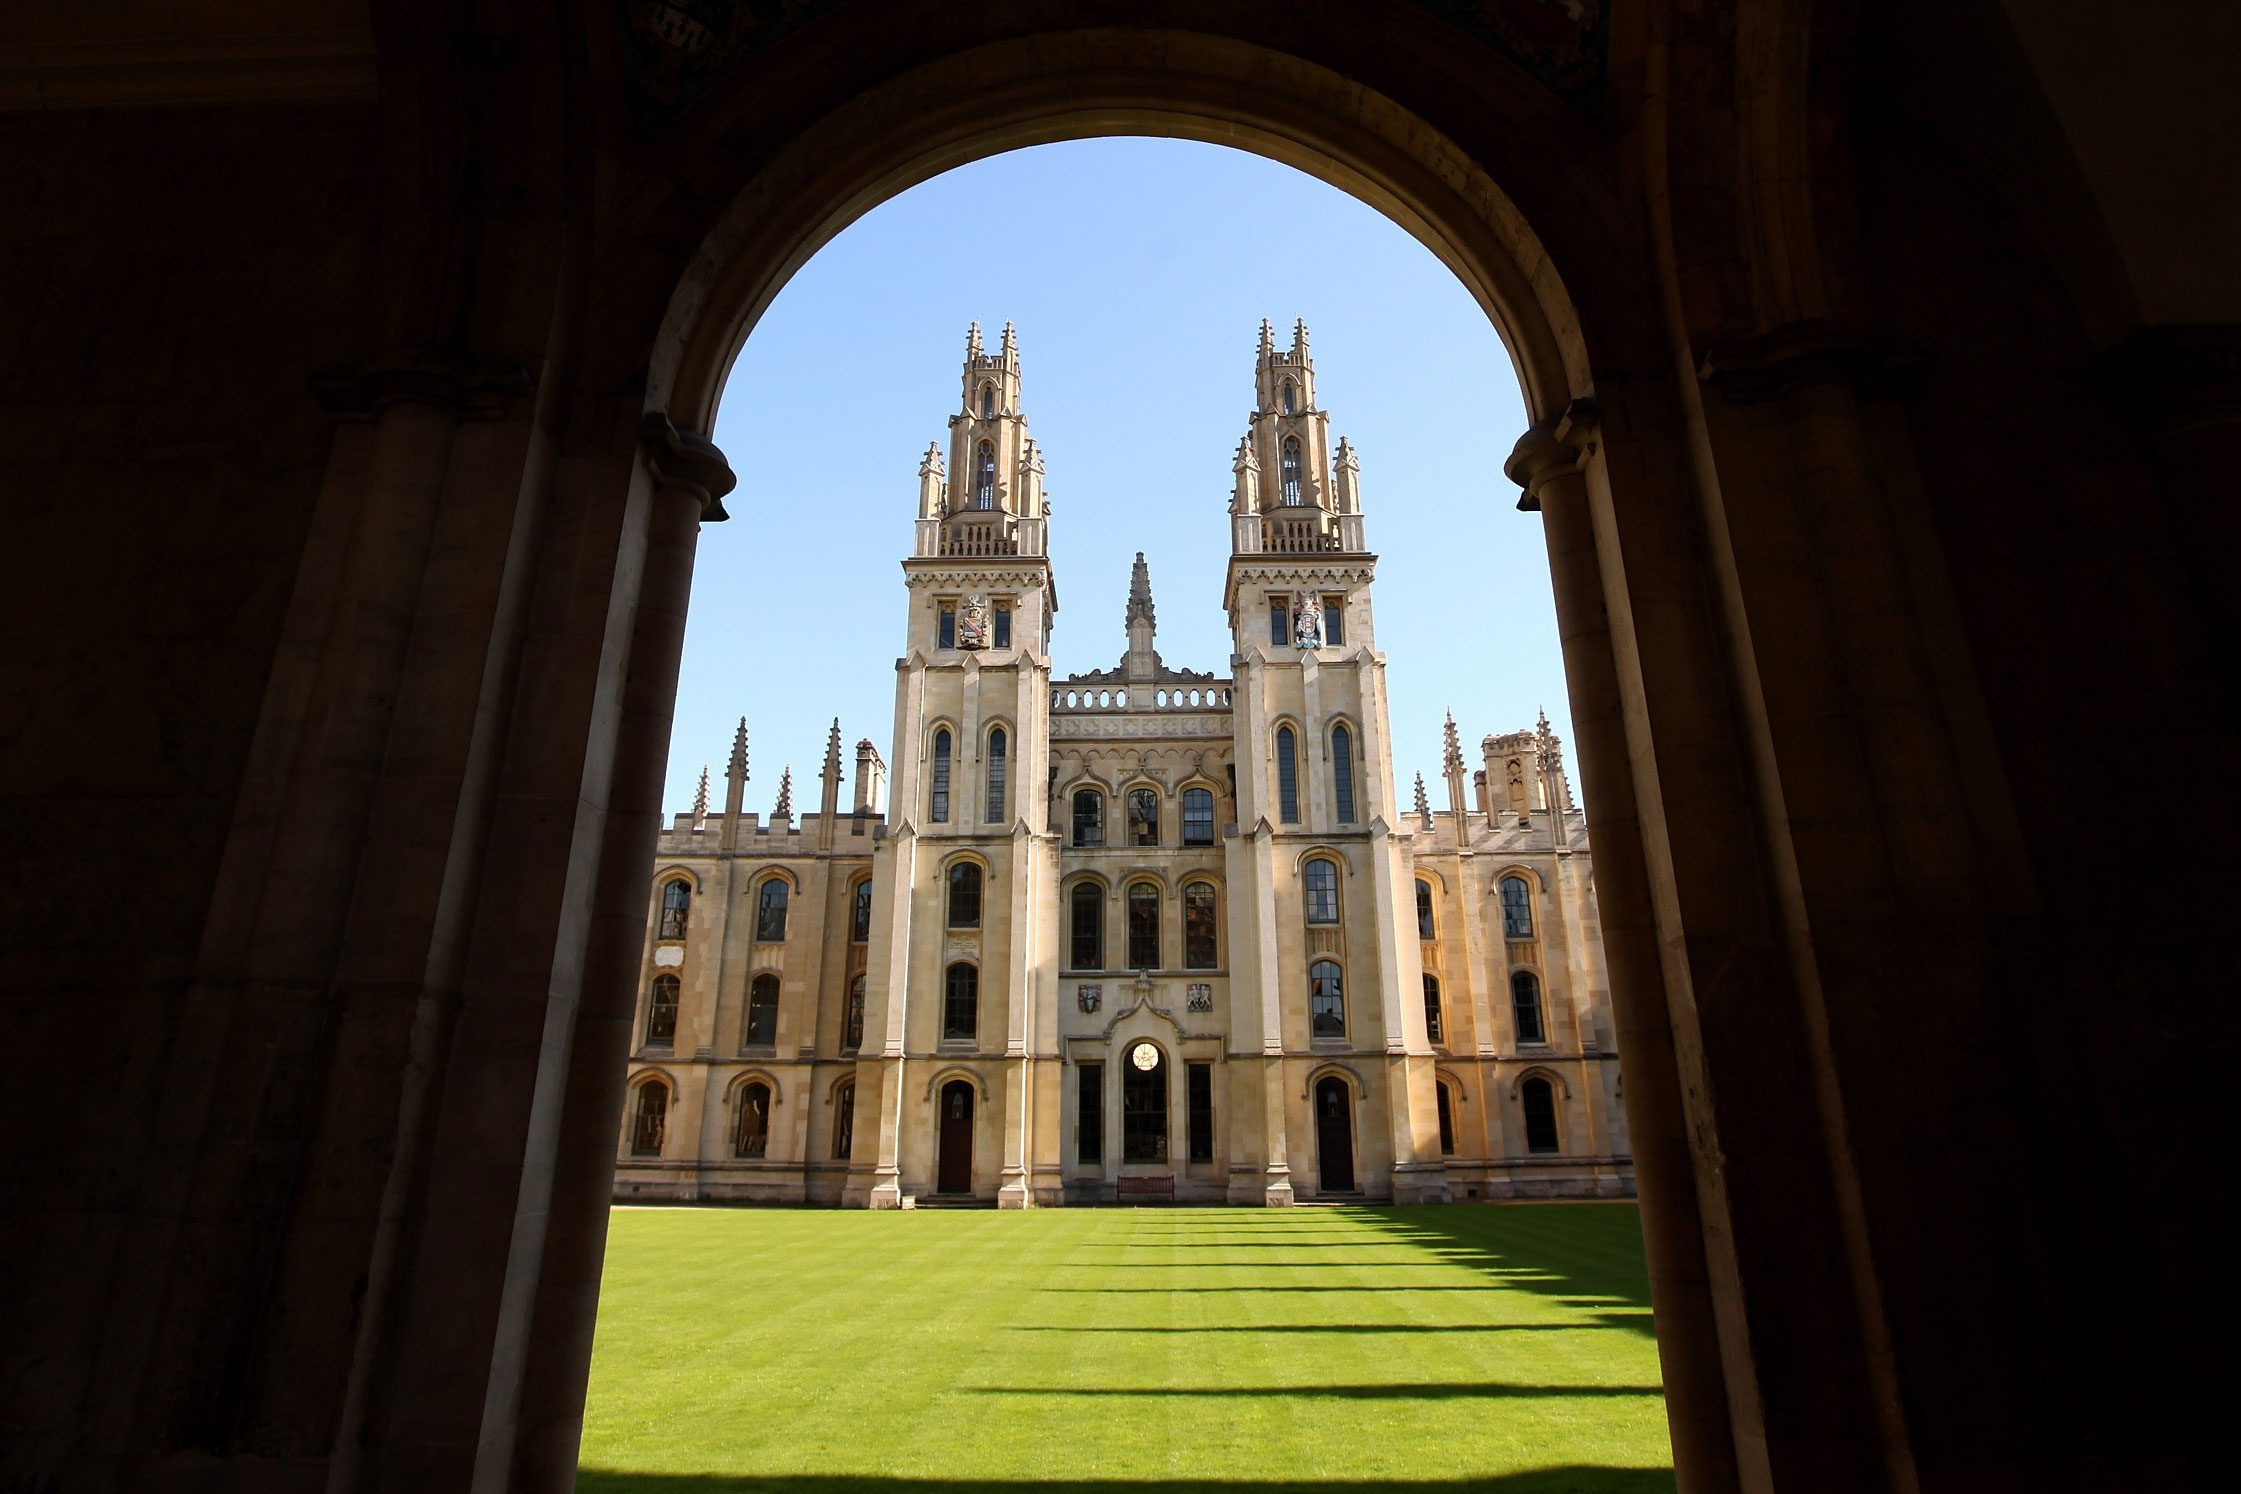 A general view of All Souls College in Oxford city centre as Oxford University commences its academic year on October 8, 2009 in Oxford, England.